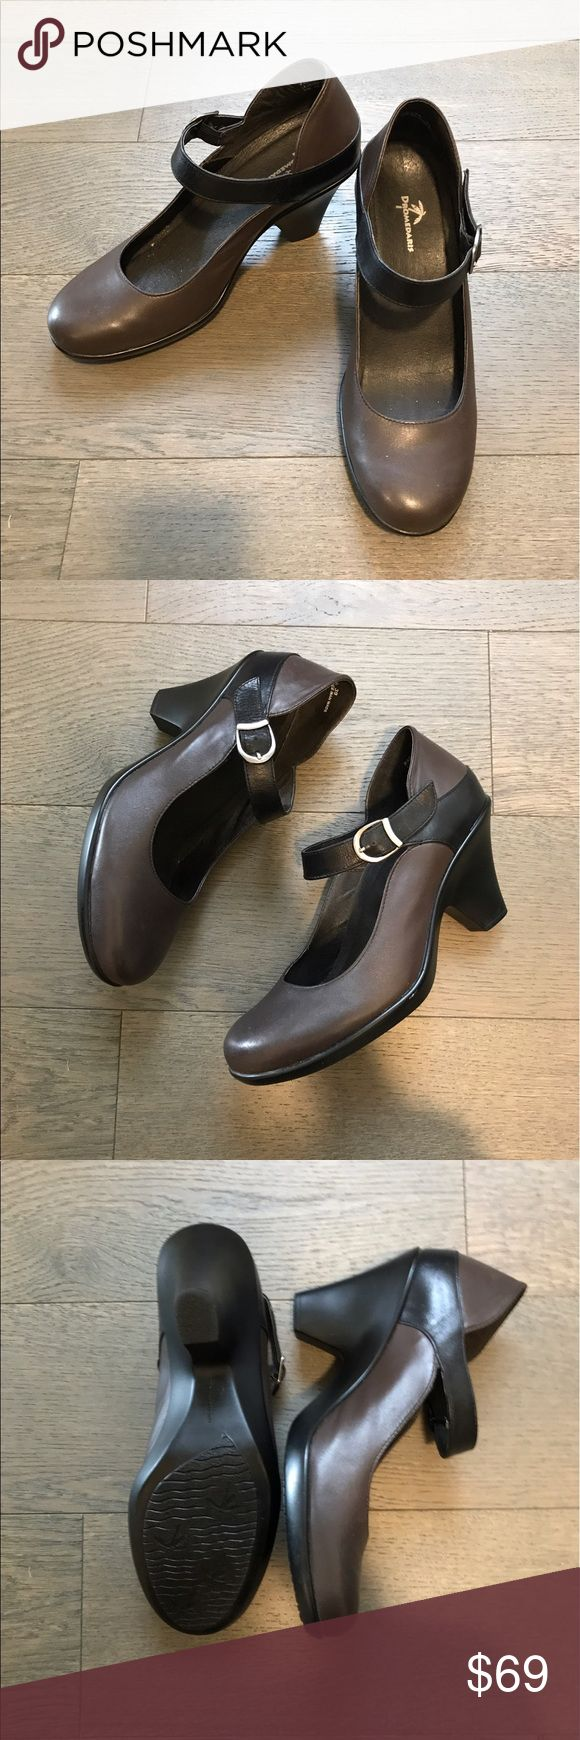 Leather two-toned Heels Leather brown body and black sole/heel shoe. Fits wider feet. Man made, lightly used! dromedaris Shoes Heels